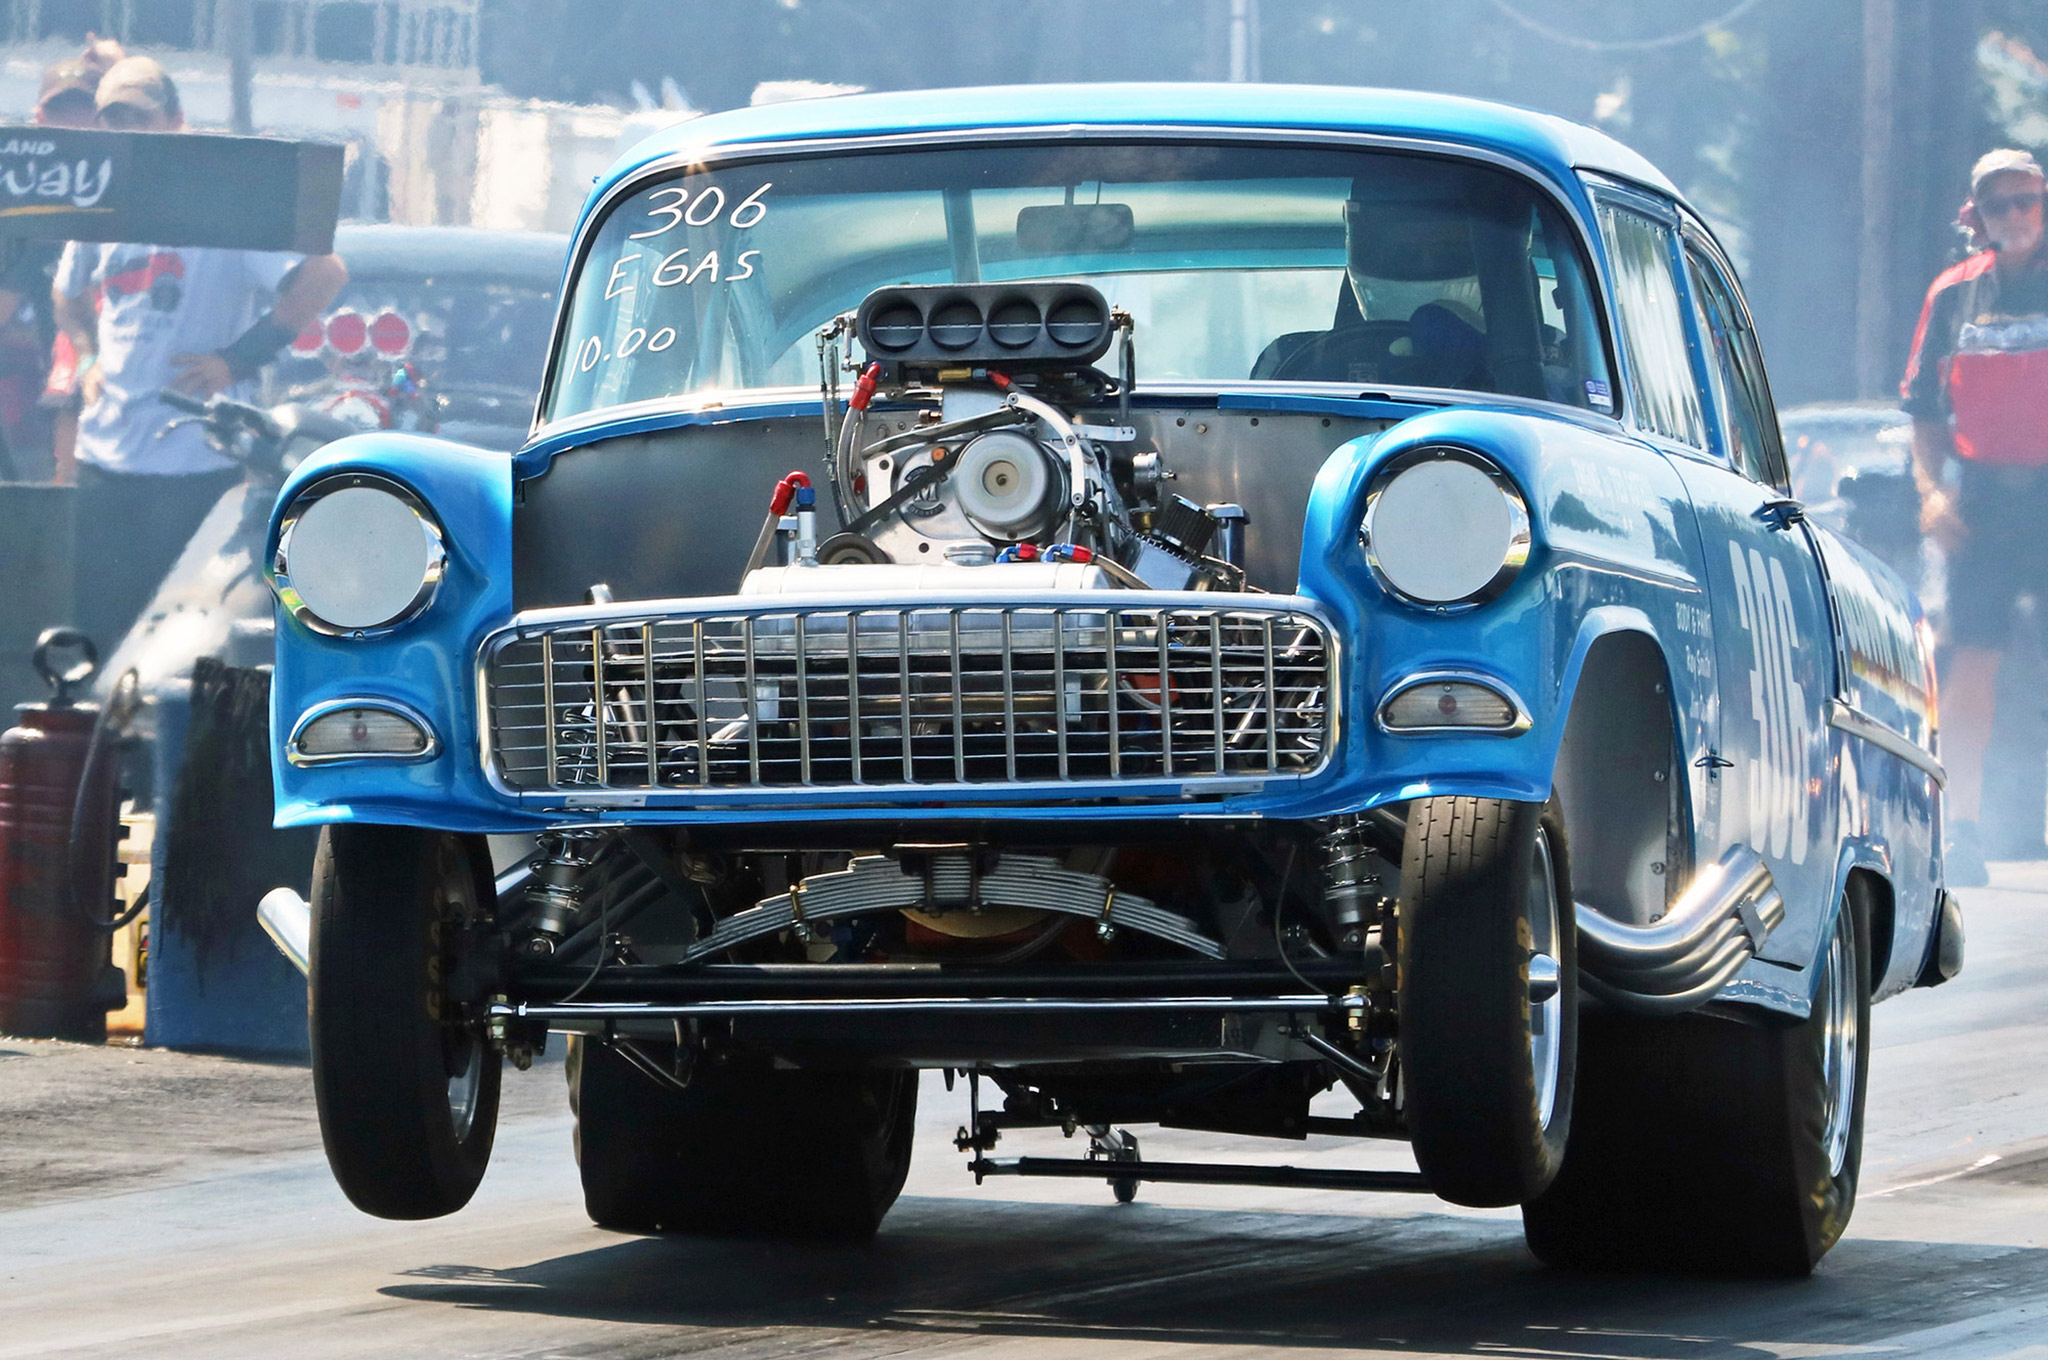 This wild, blown altered wheelbase 1955 Chevy was in Gasser competition at the New England Hot Rod Reunion where it ran a 9.16 e.t. during qualifications on Saturday.